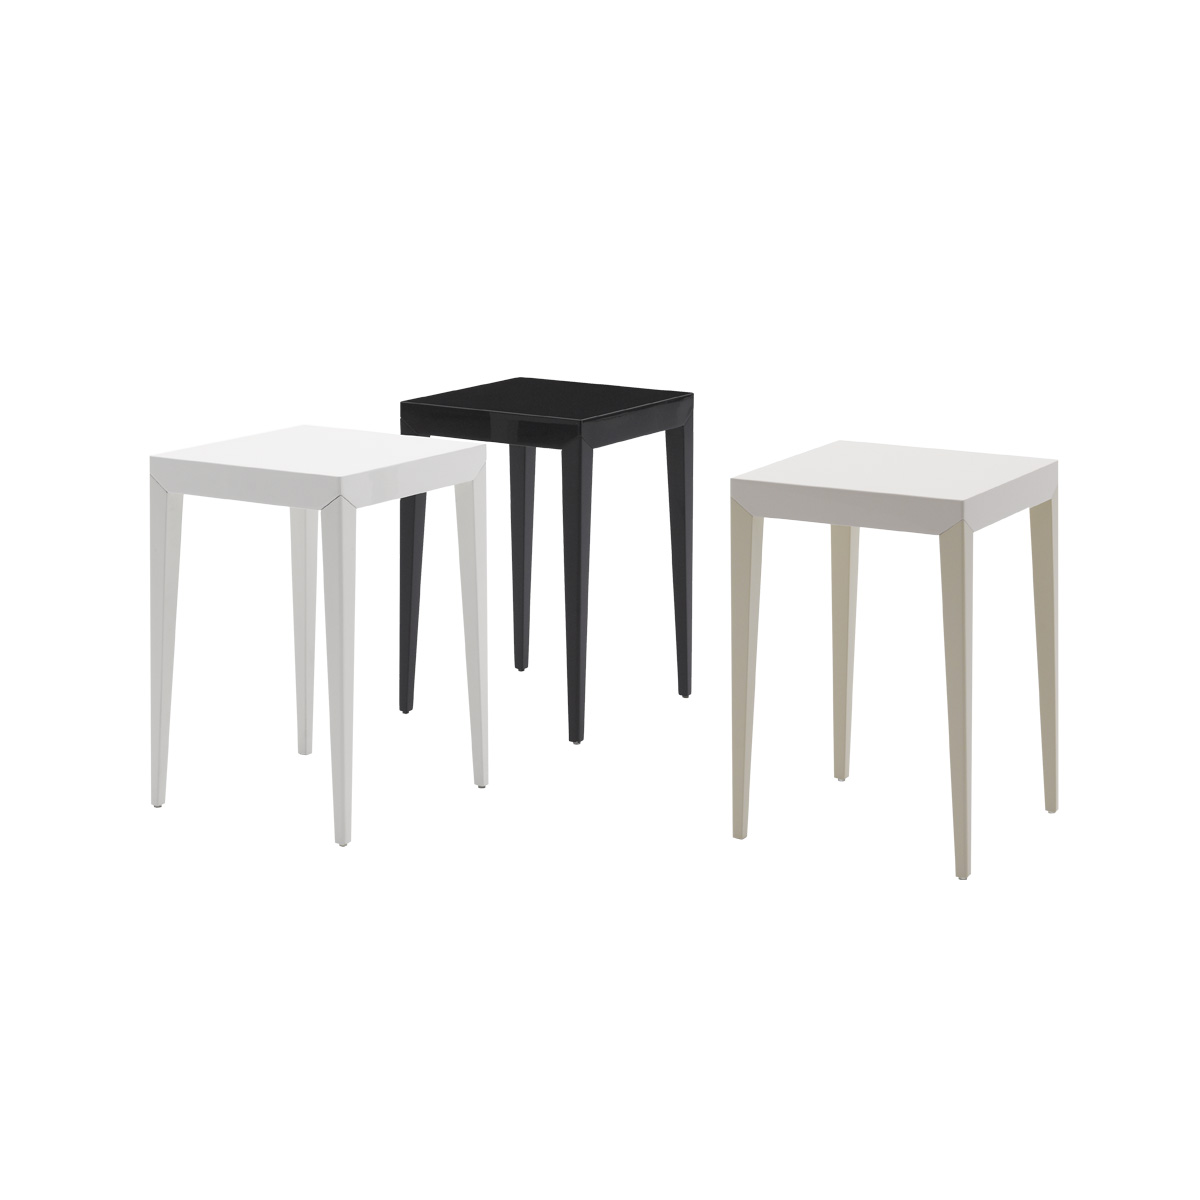 MESSINA SQUARE SIDE TABLE Beyond Furniture